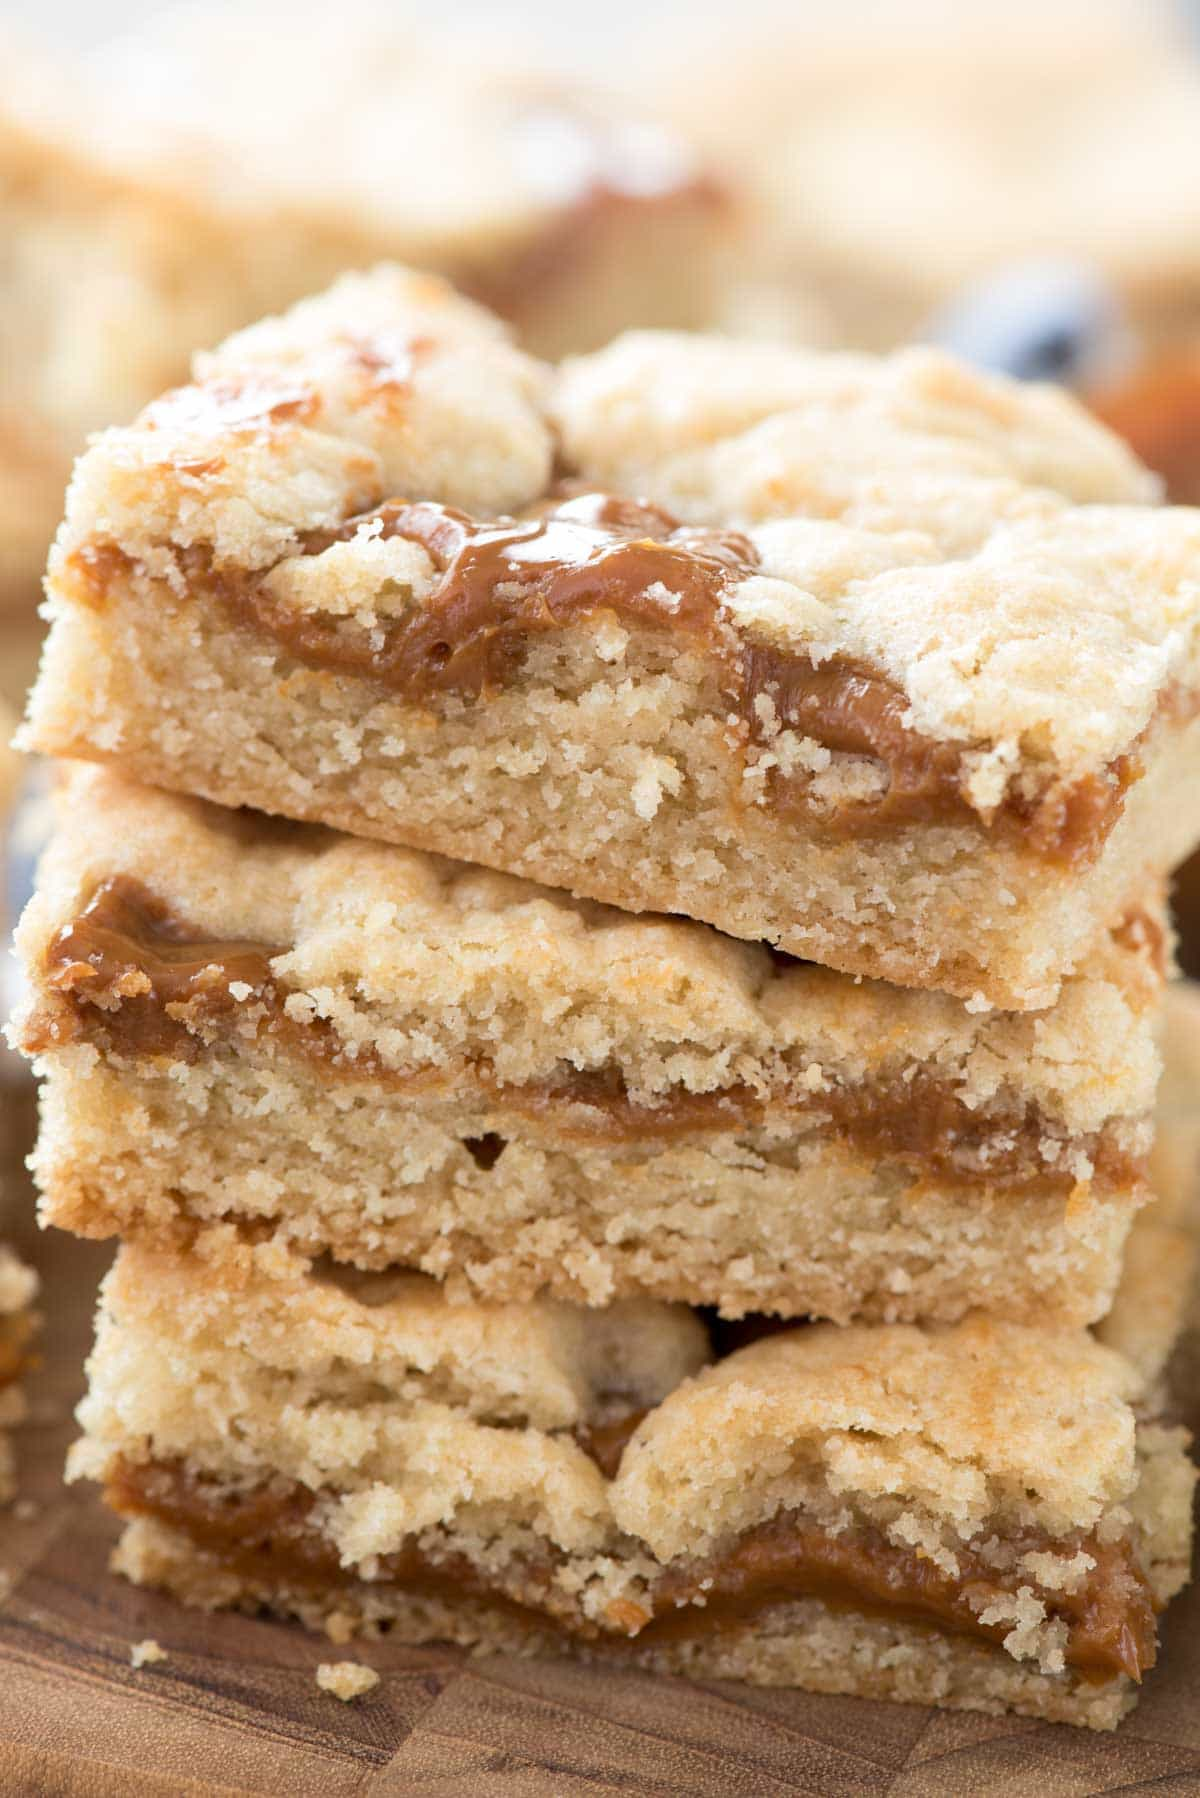 Dulce de Leche Gooey Bars - this EASY sugar cookie bar recipe has gooey dulce de leche inside! Cookie bars with caramel are always a hit!